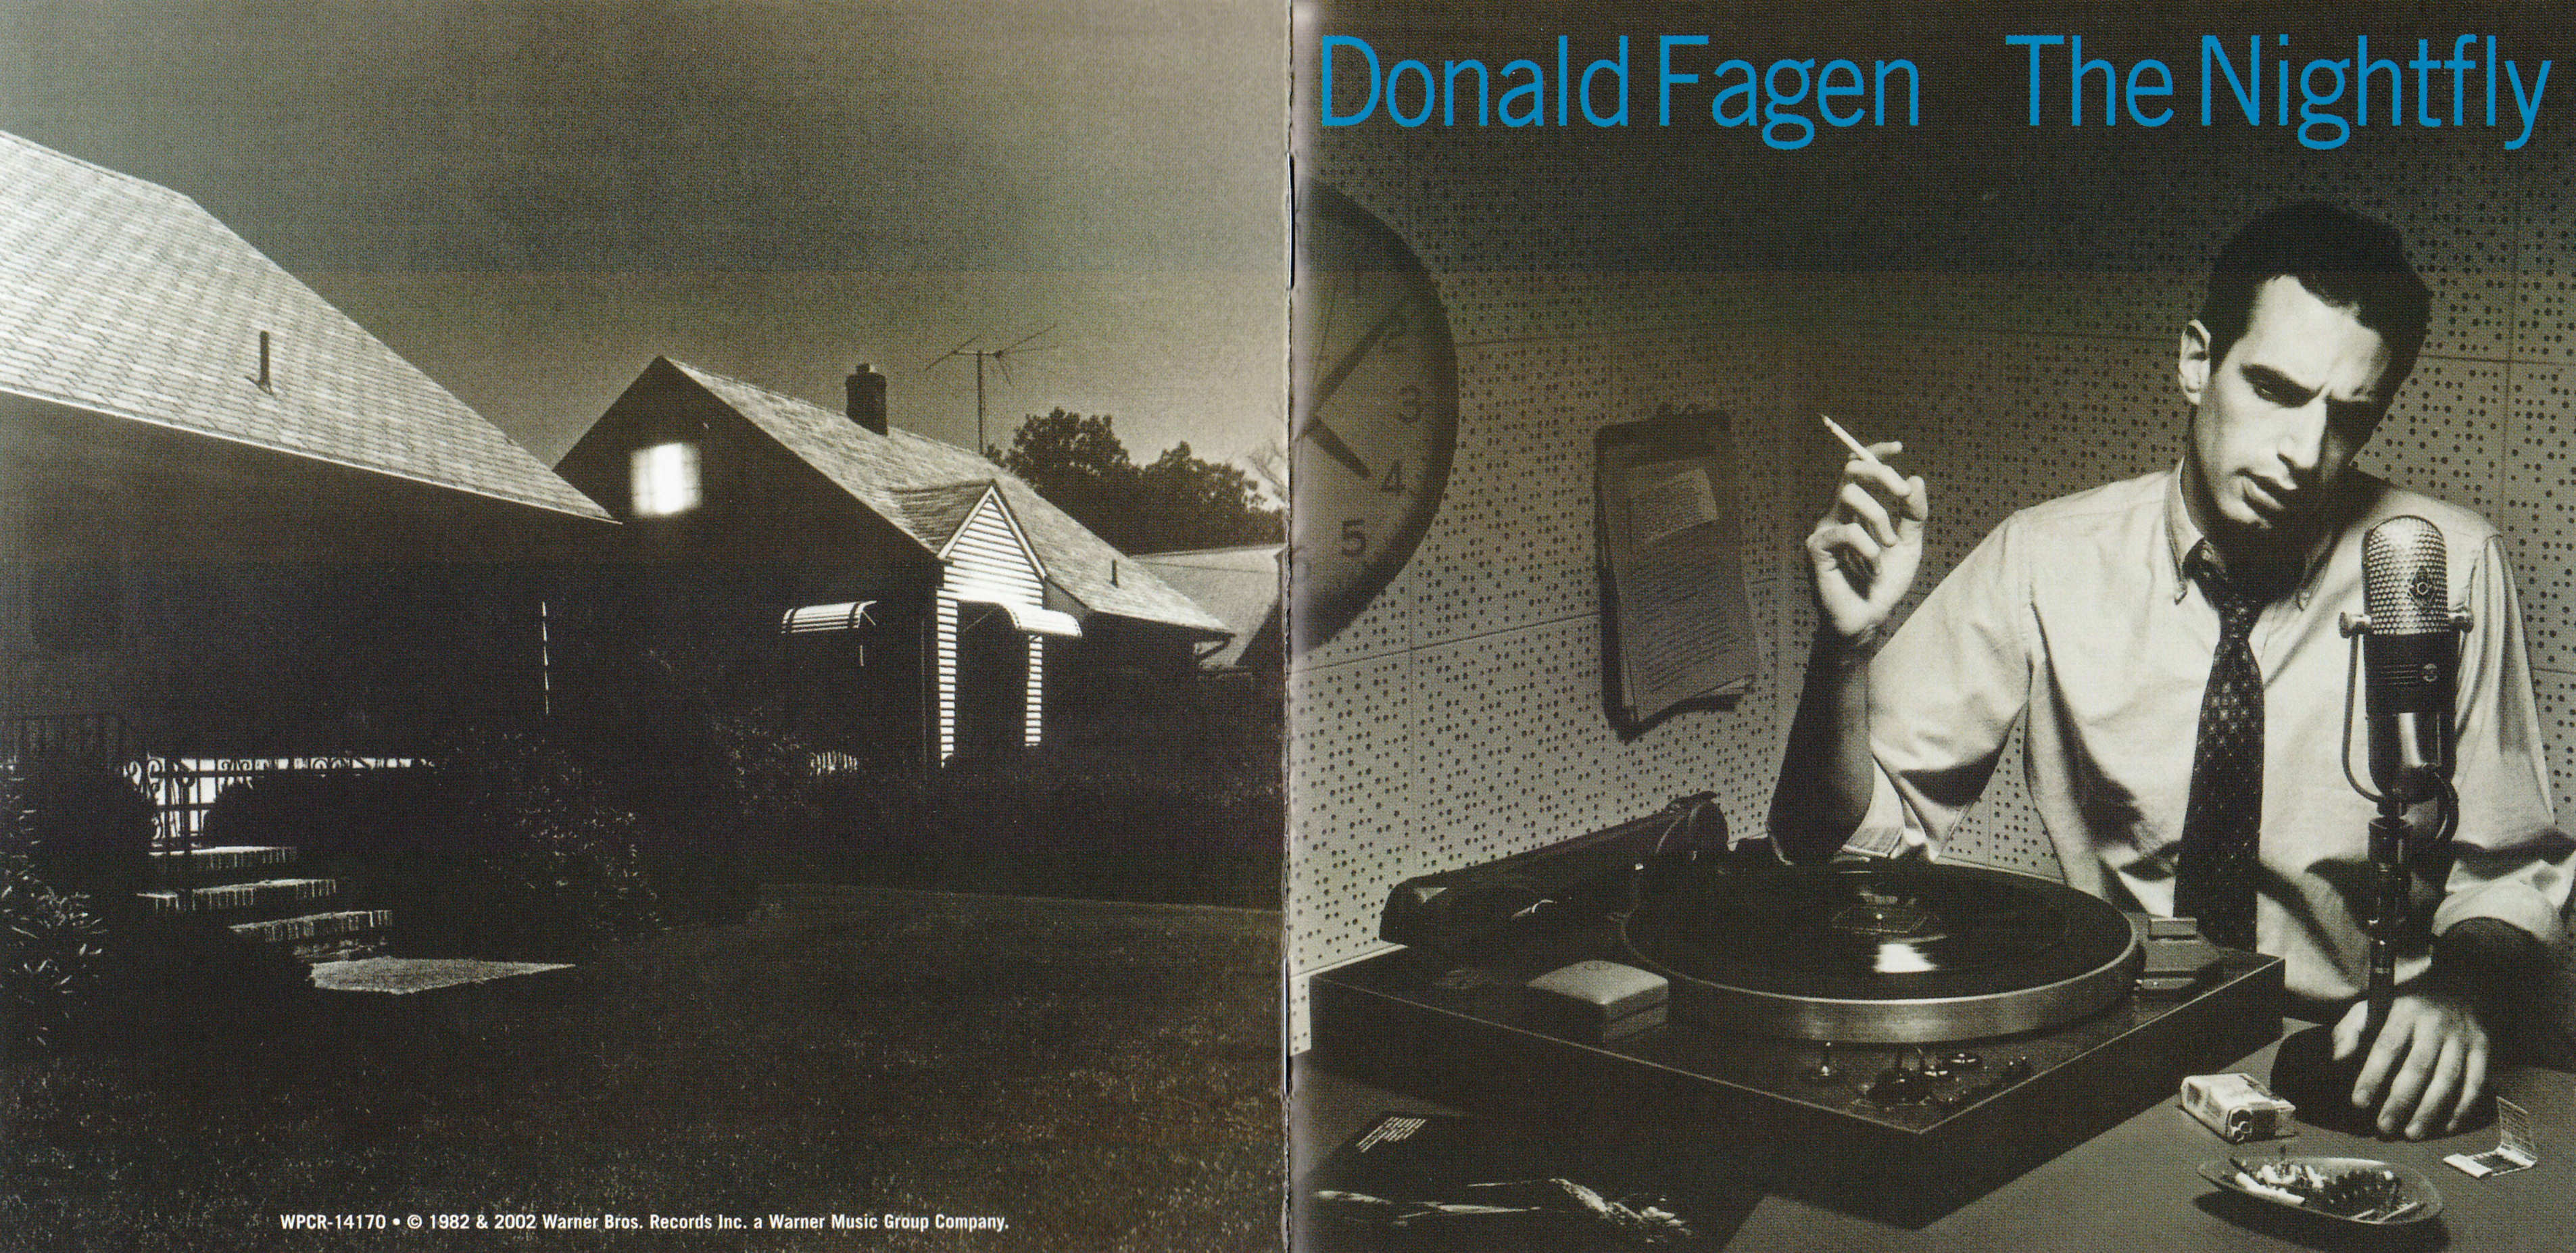 Donald fagen-the nightfly-flac 48khz24bit download acoustic sounds.